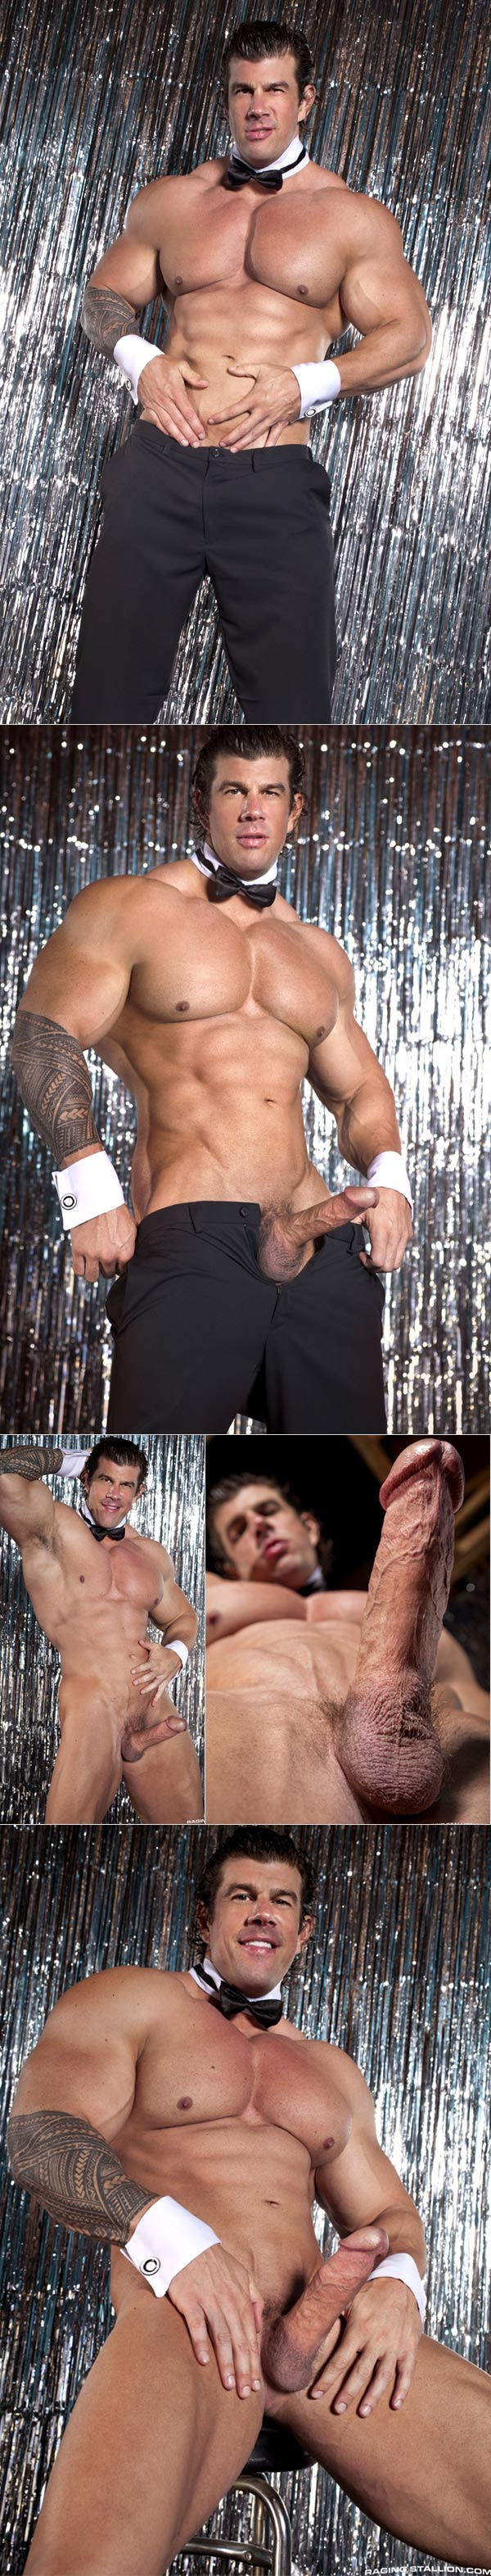 Stripped 2 – Hard For The Money (Marcus Ruhl & Zeb Atlas) at Raging Stallion Studios